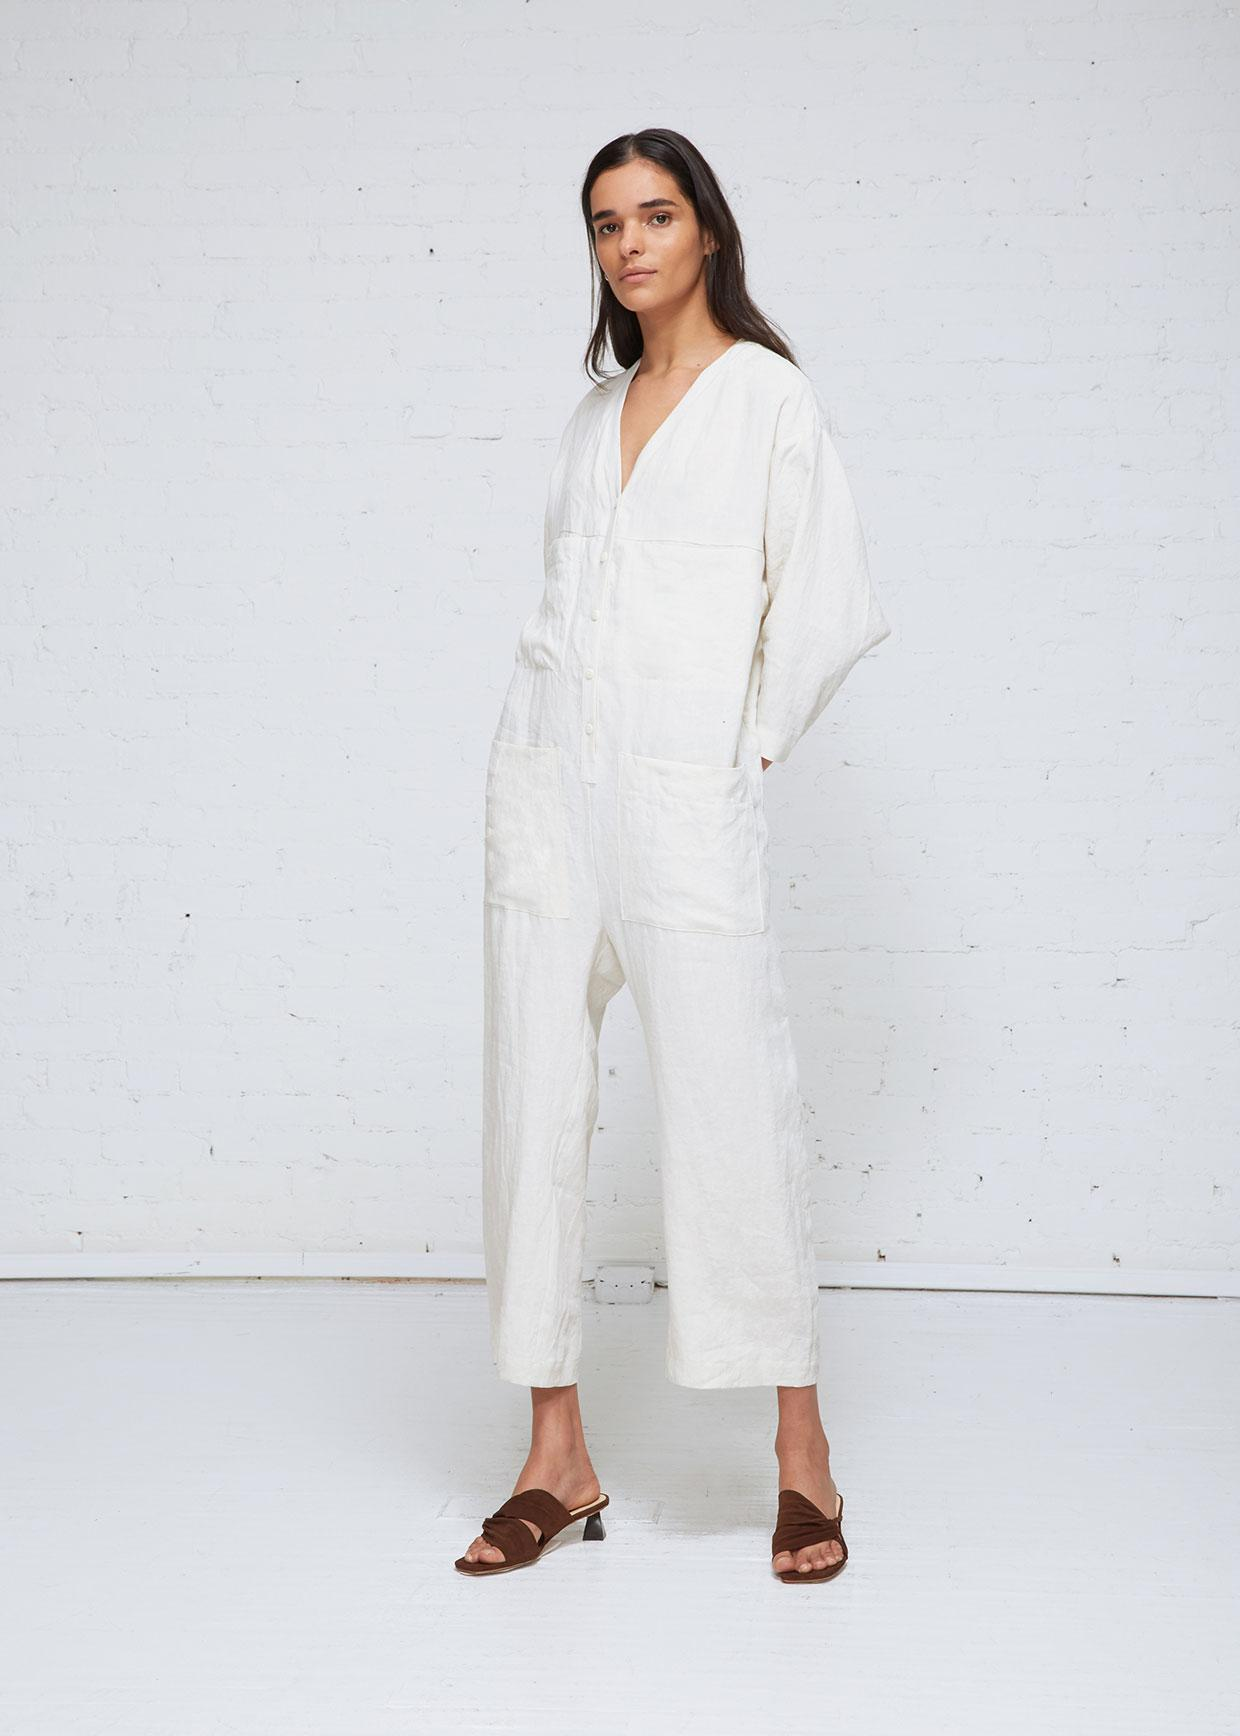 8c951484502 Ilana Kohn Tuck Coverall in White - Lyst